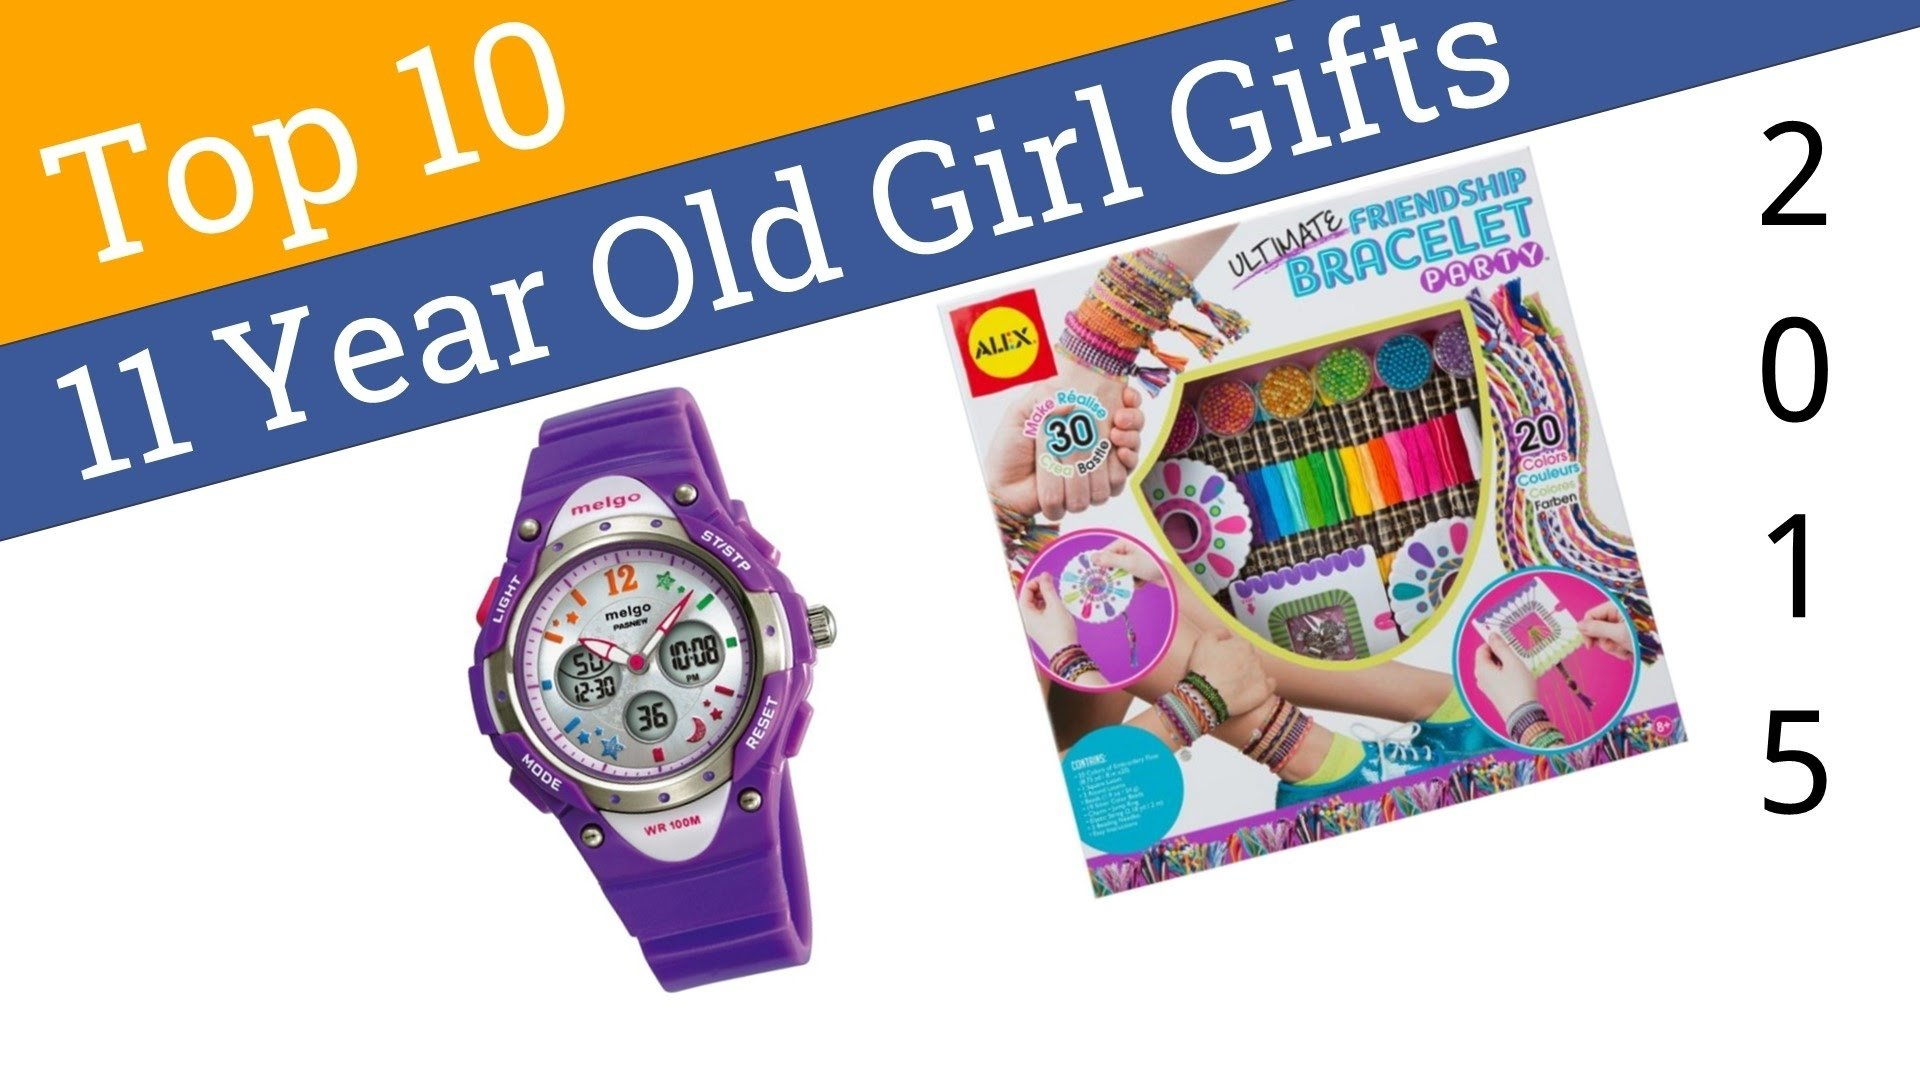 10 Wonderful 10 Year Old Gift Ideas 10 best 11 year old girl gifts 2015 youtube 17 2021